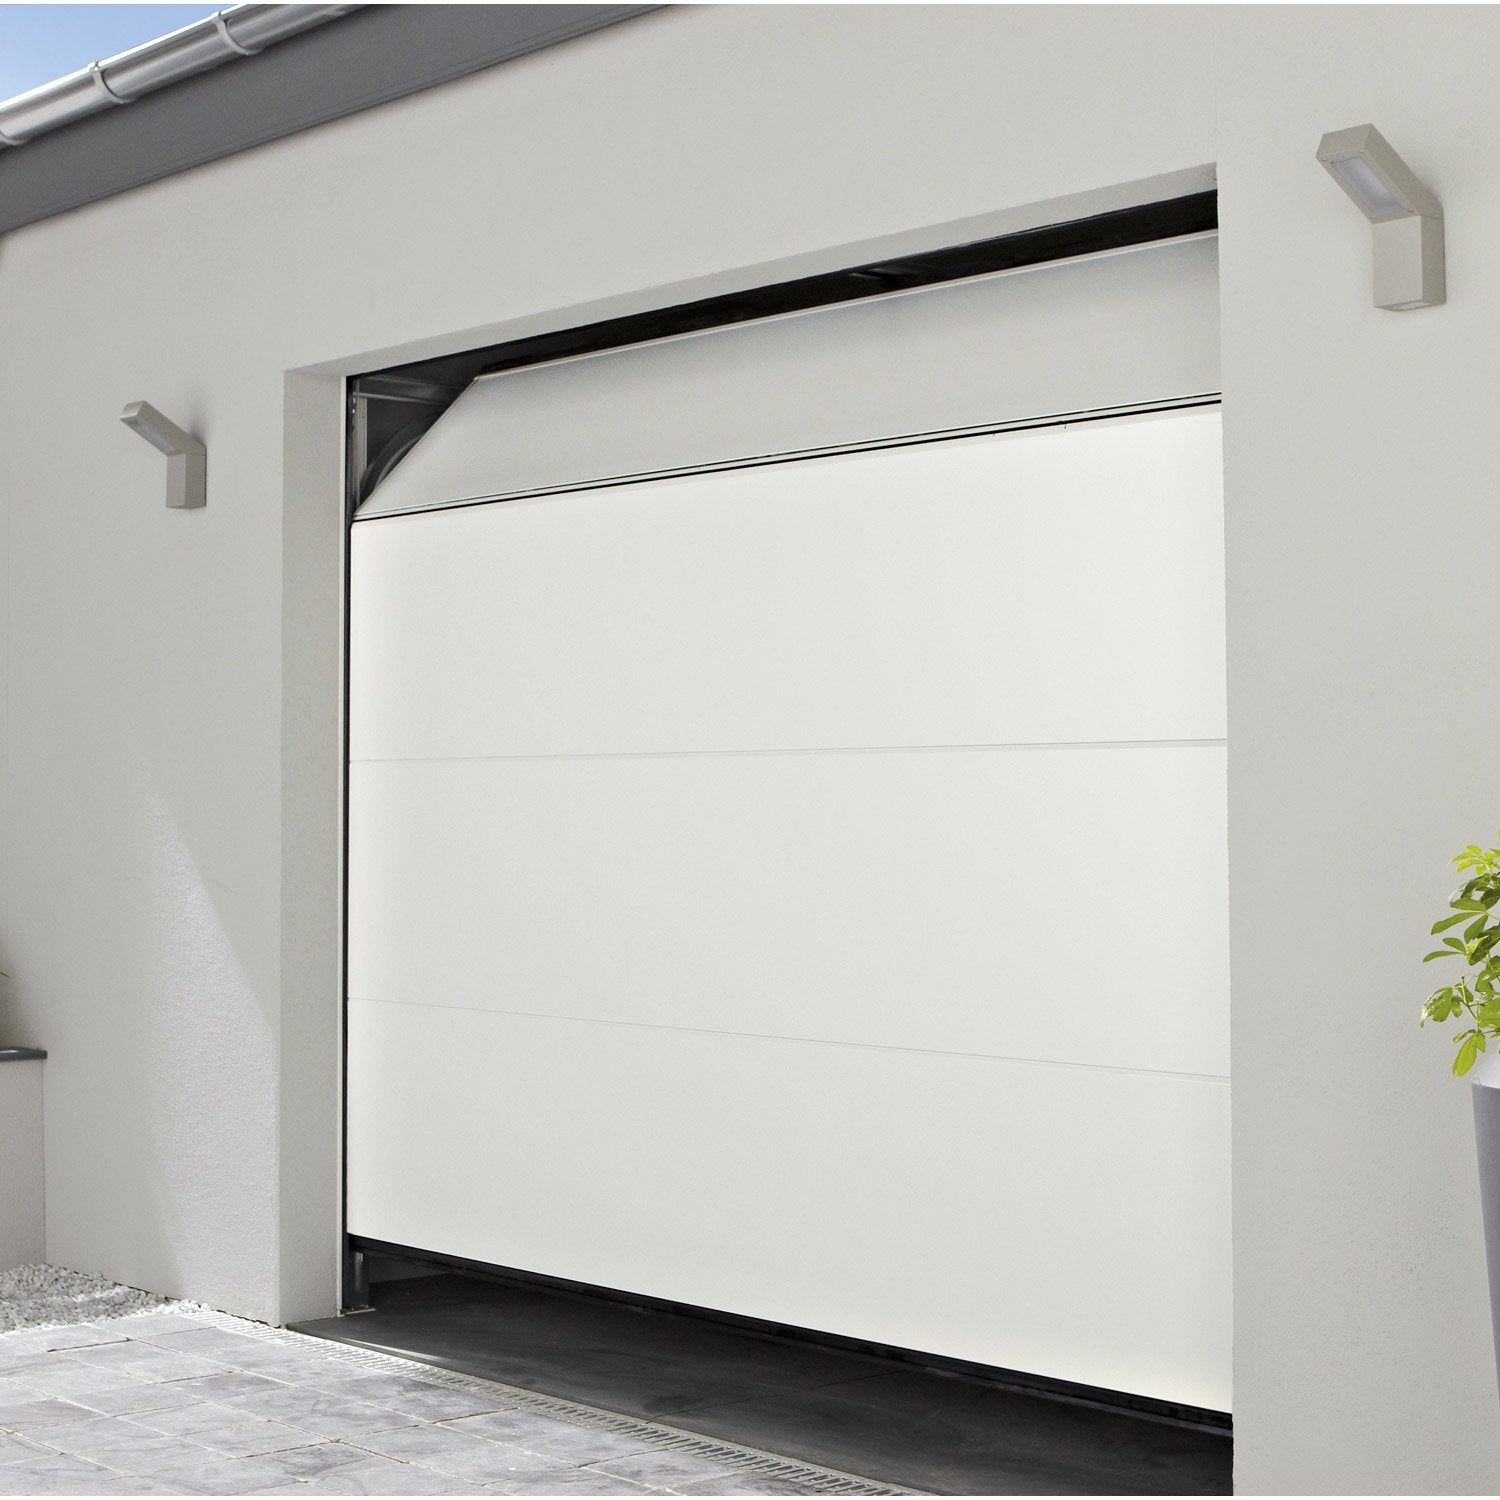 Porte de garage sectionelle motoris e chypre rainures - Prix porte garage sectionnelle motorisee ...